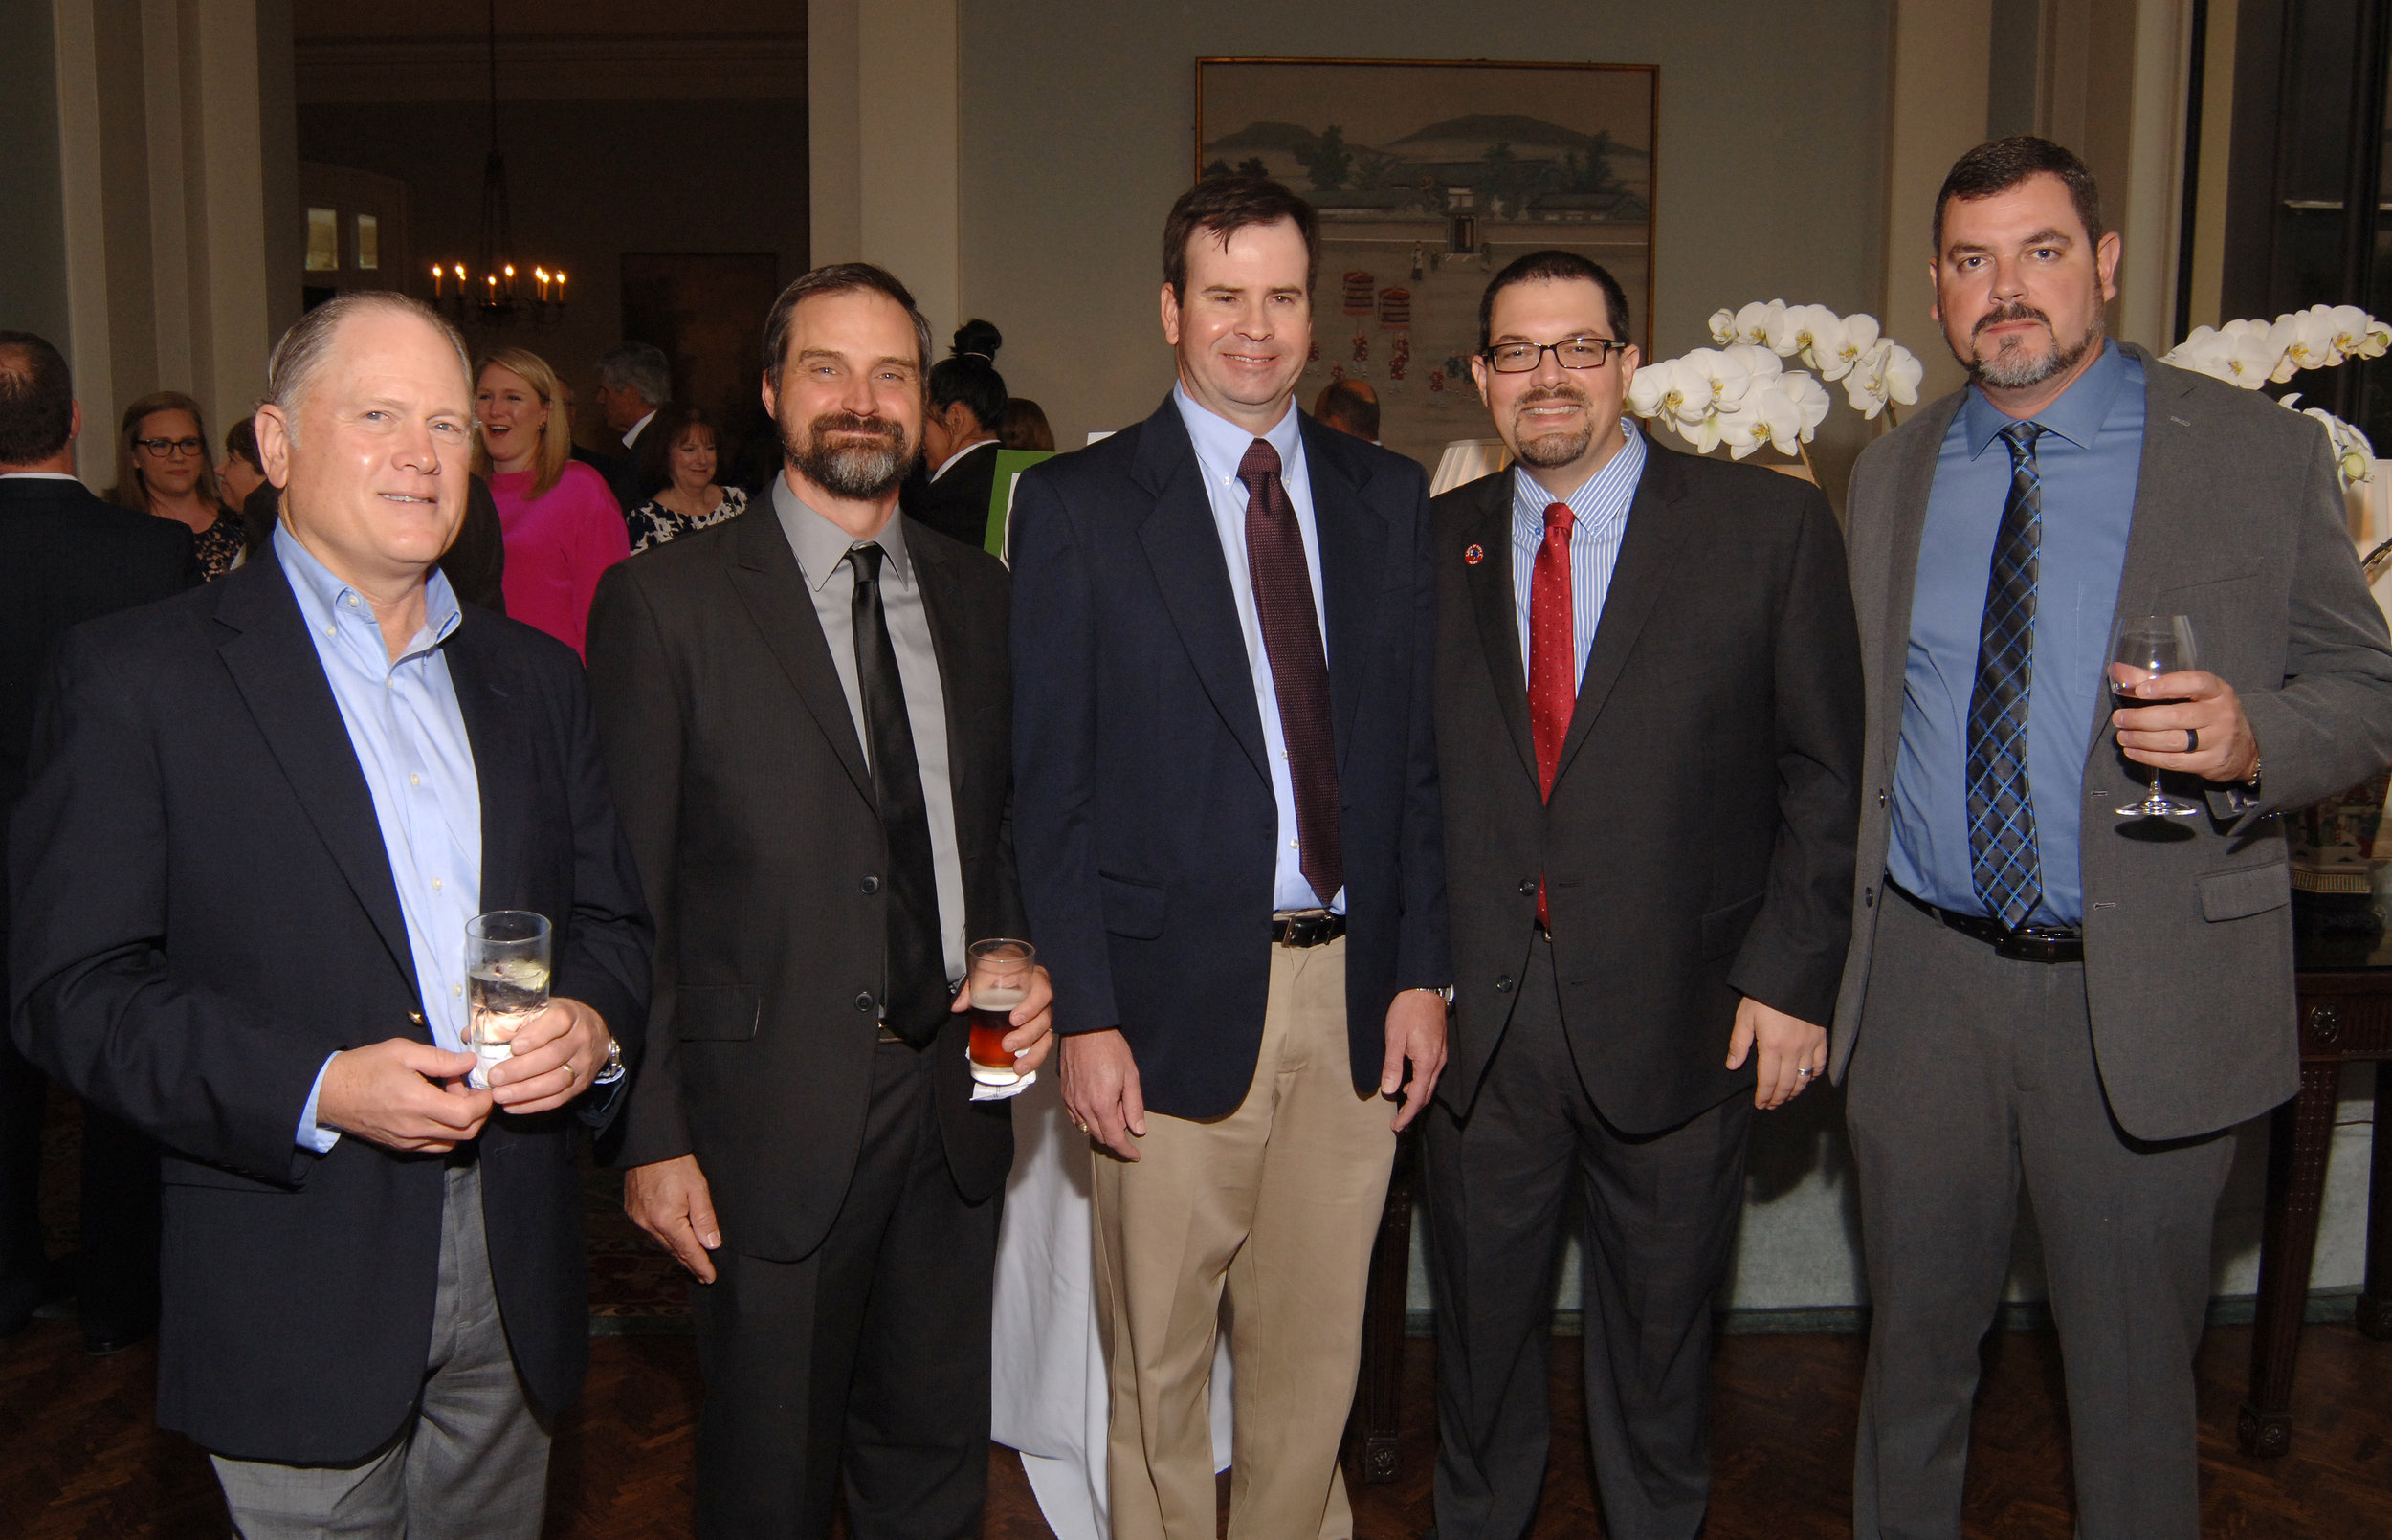 KPCGala_Eric Paulsen, Matt Stahman, Jeff Wellman, Chris Harris, Michael Crow_Tom DuBrock photo.JPG